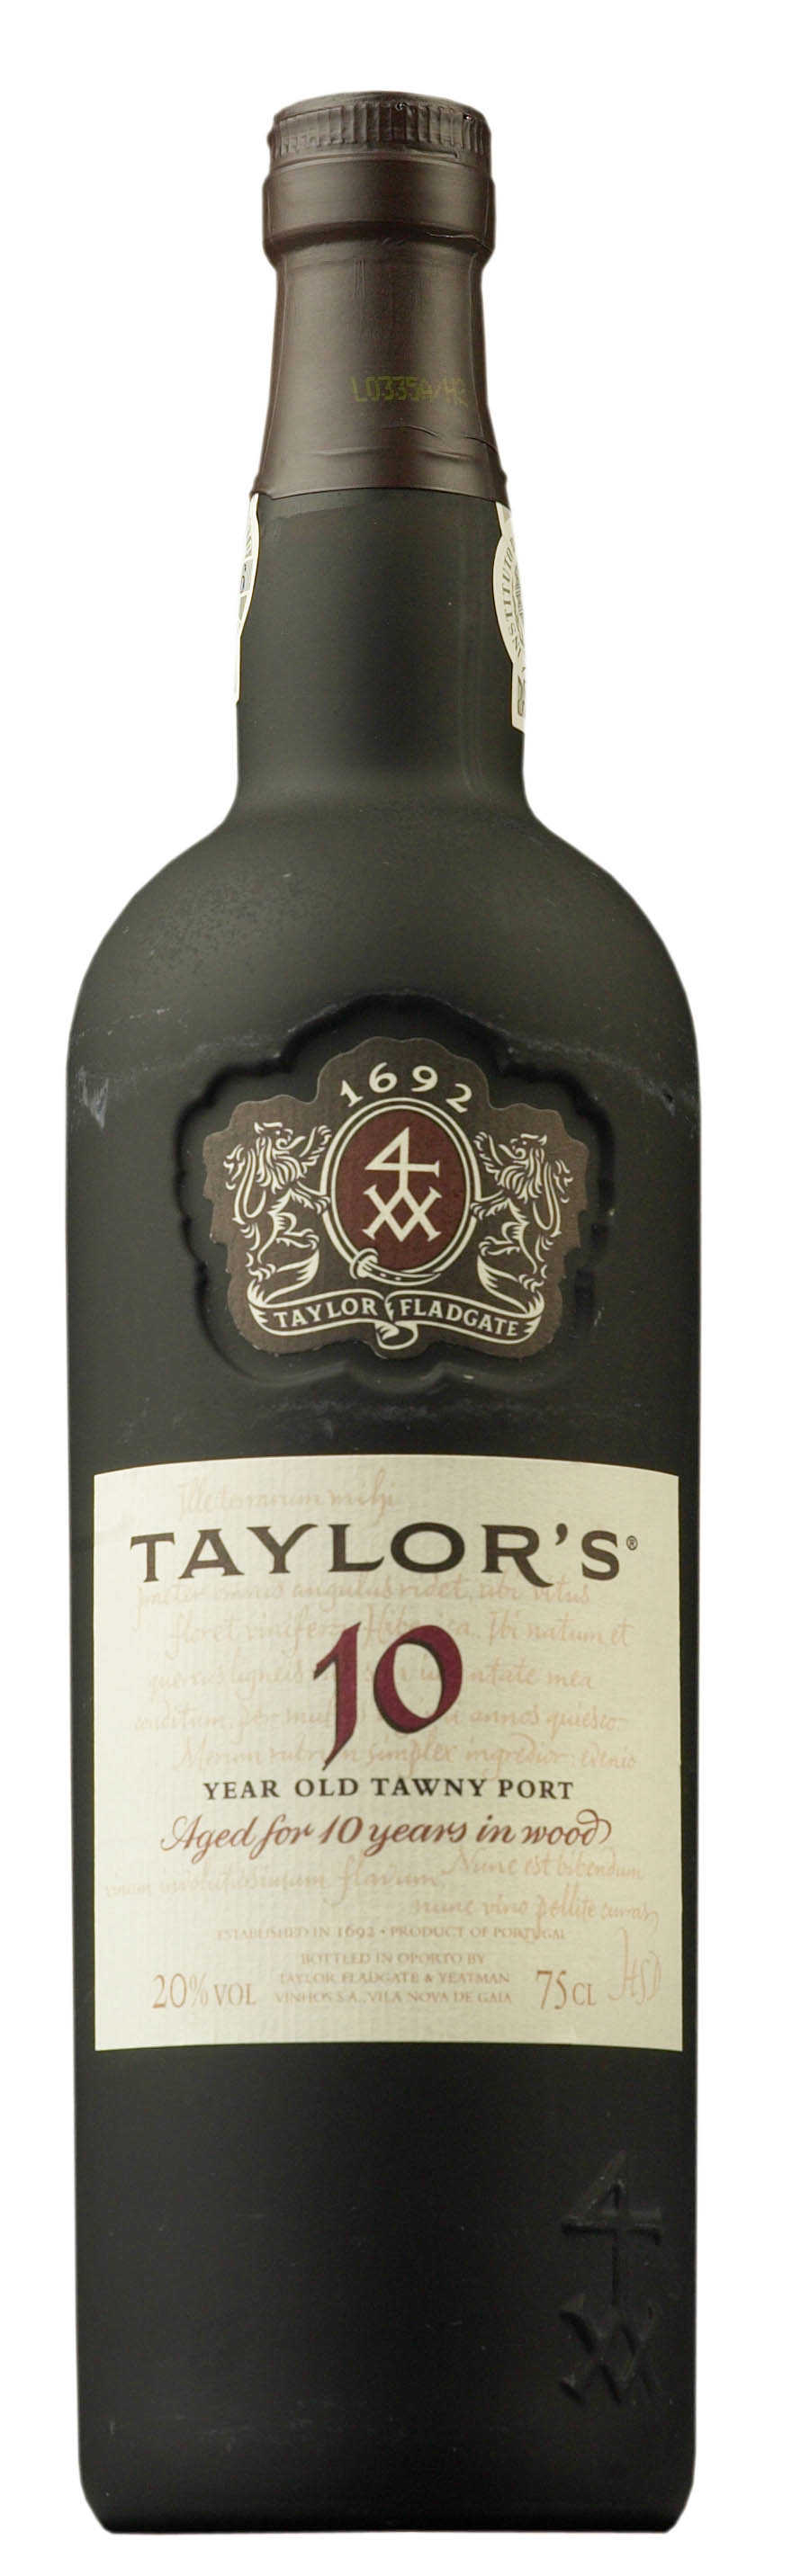 Taylor's 10 Yeat Old Tawny Port